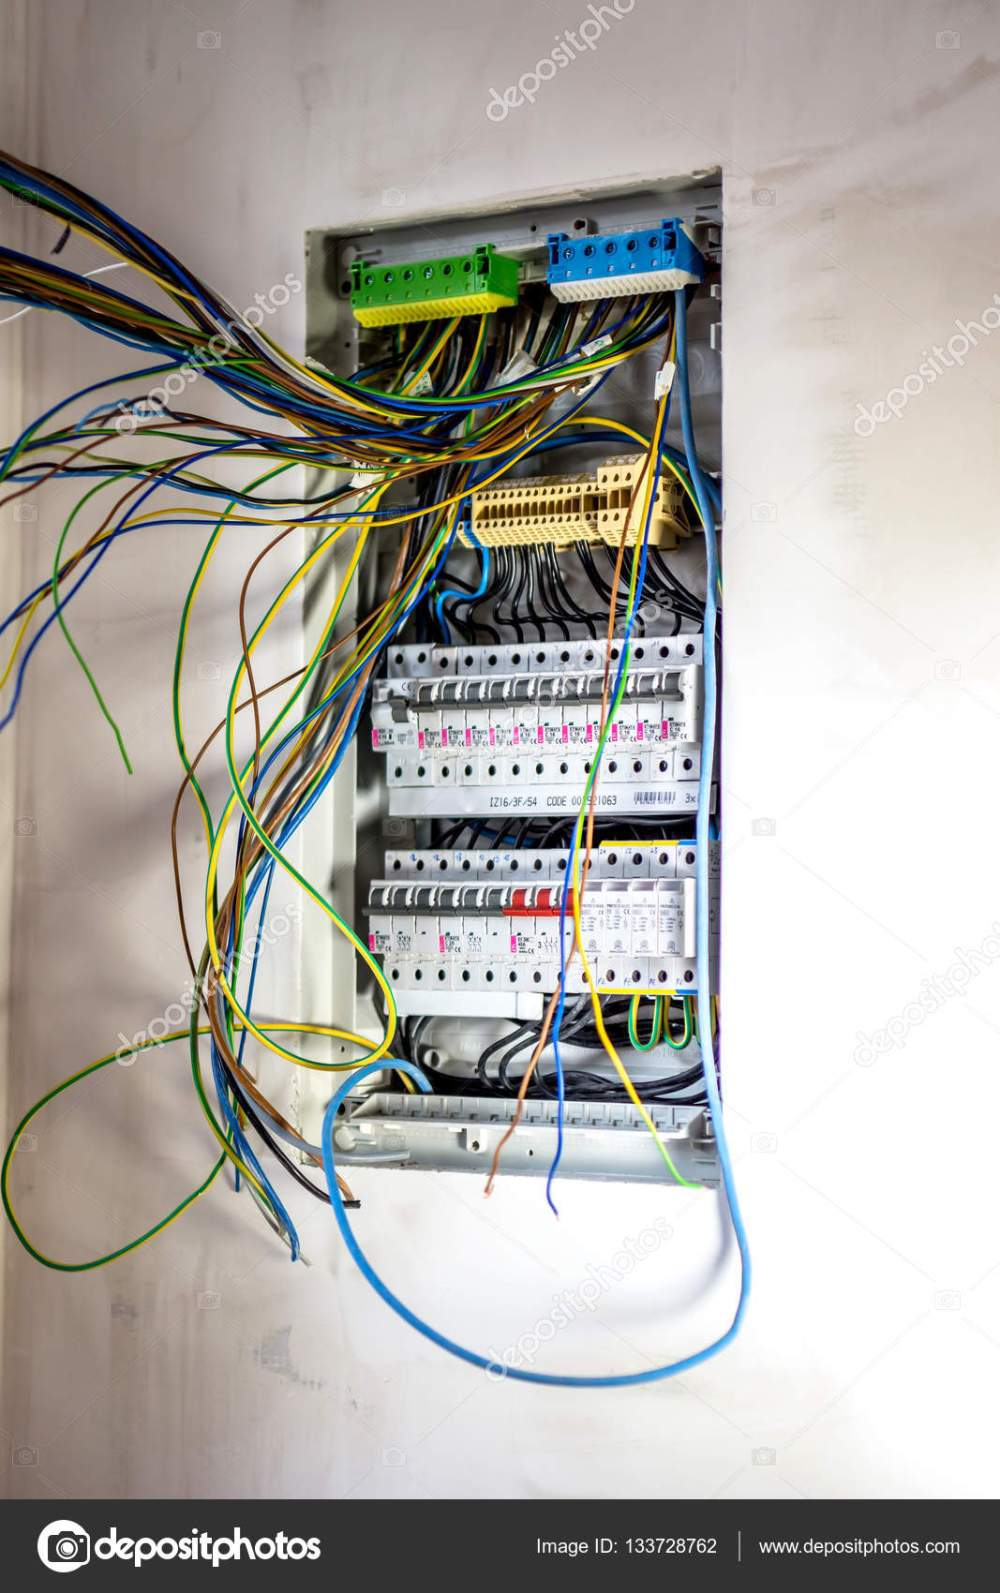 medium resolution of electrician fixing electric panel stock photo automatic fuse switches circuit breaker and wiring terminal in cabine photo by fotovincek